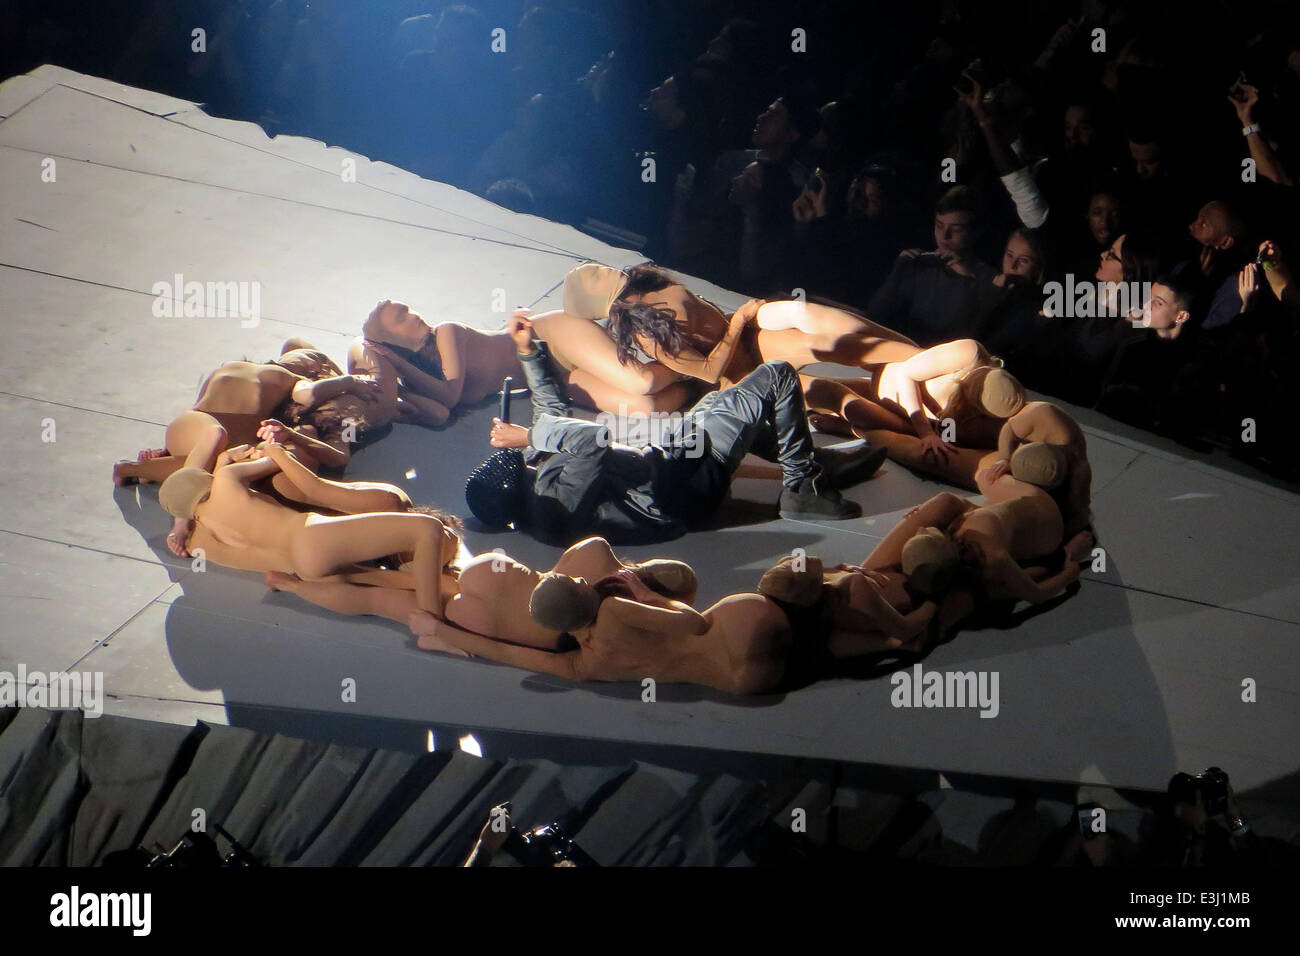 Kanye West Performs To A Sold Out Crowd At Madison Square Garden As Stock Photo Royalty Free